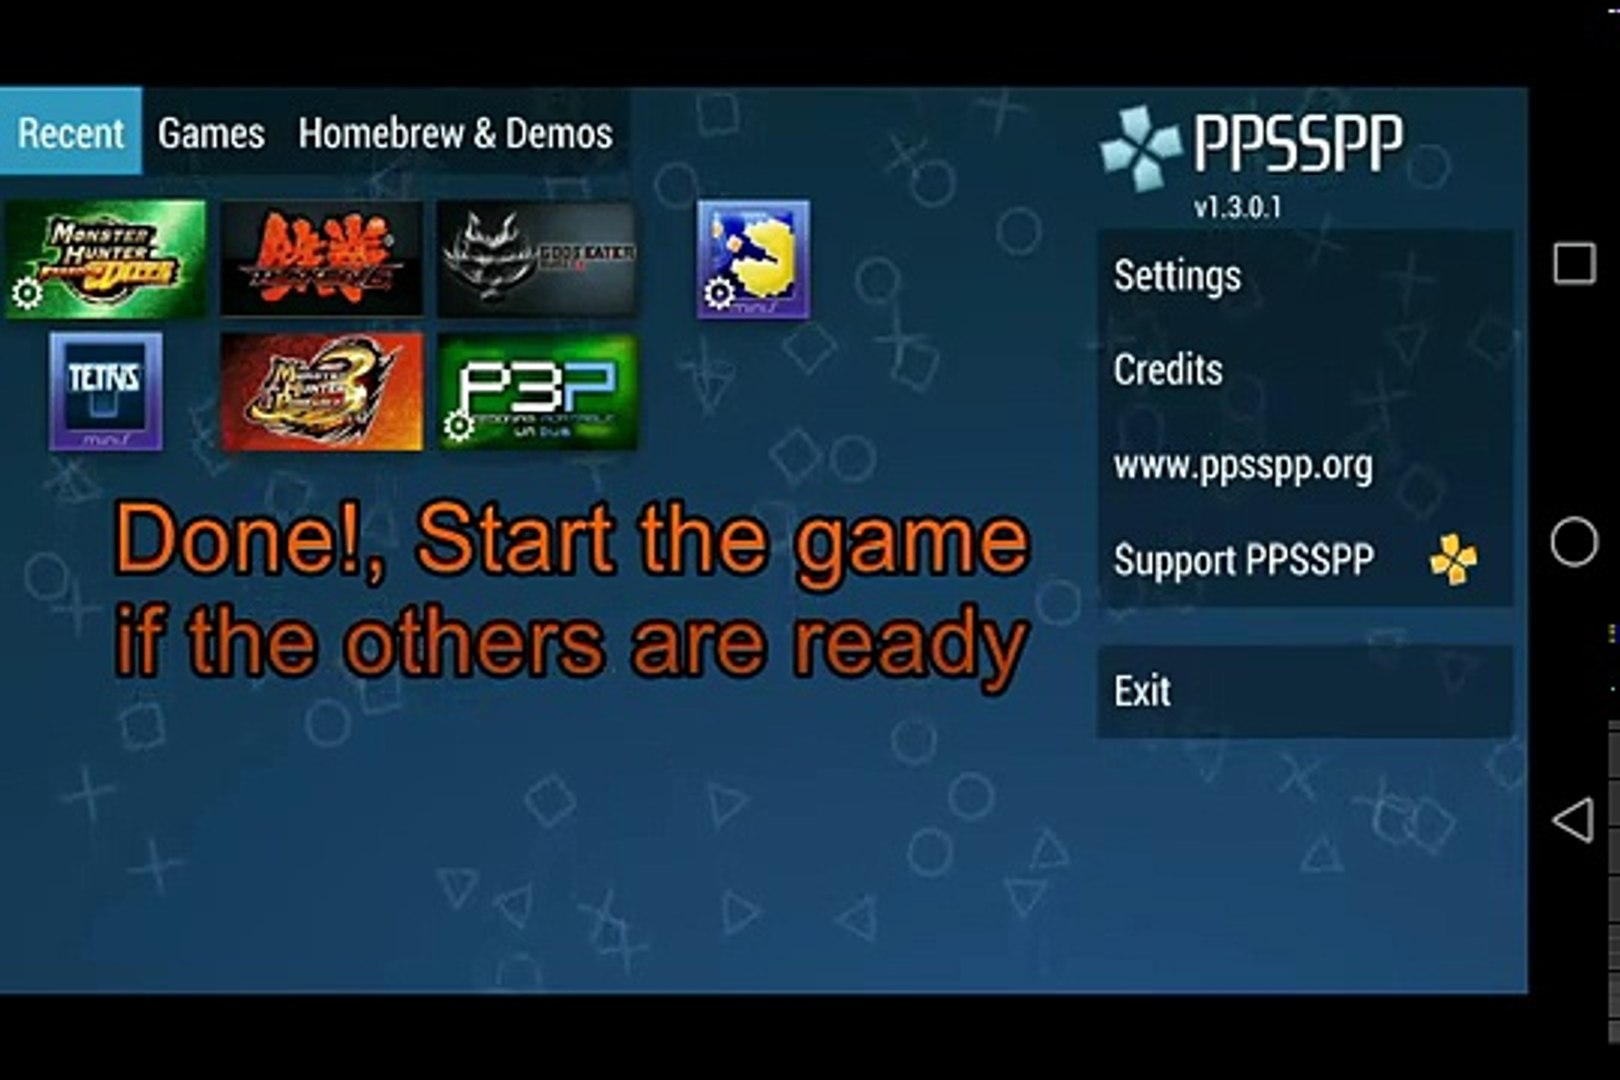 PPSSPP Local Multiplayer using Wireless Router - Android as Host